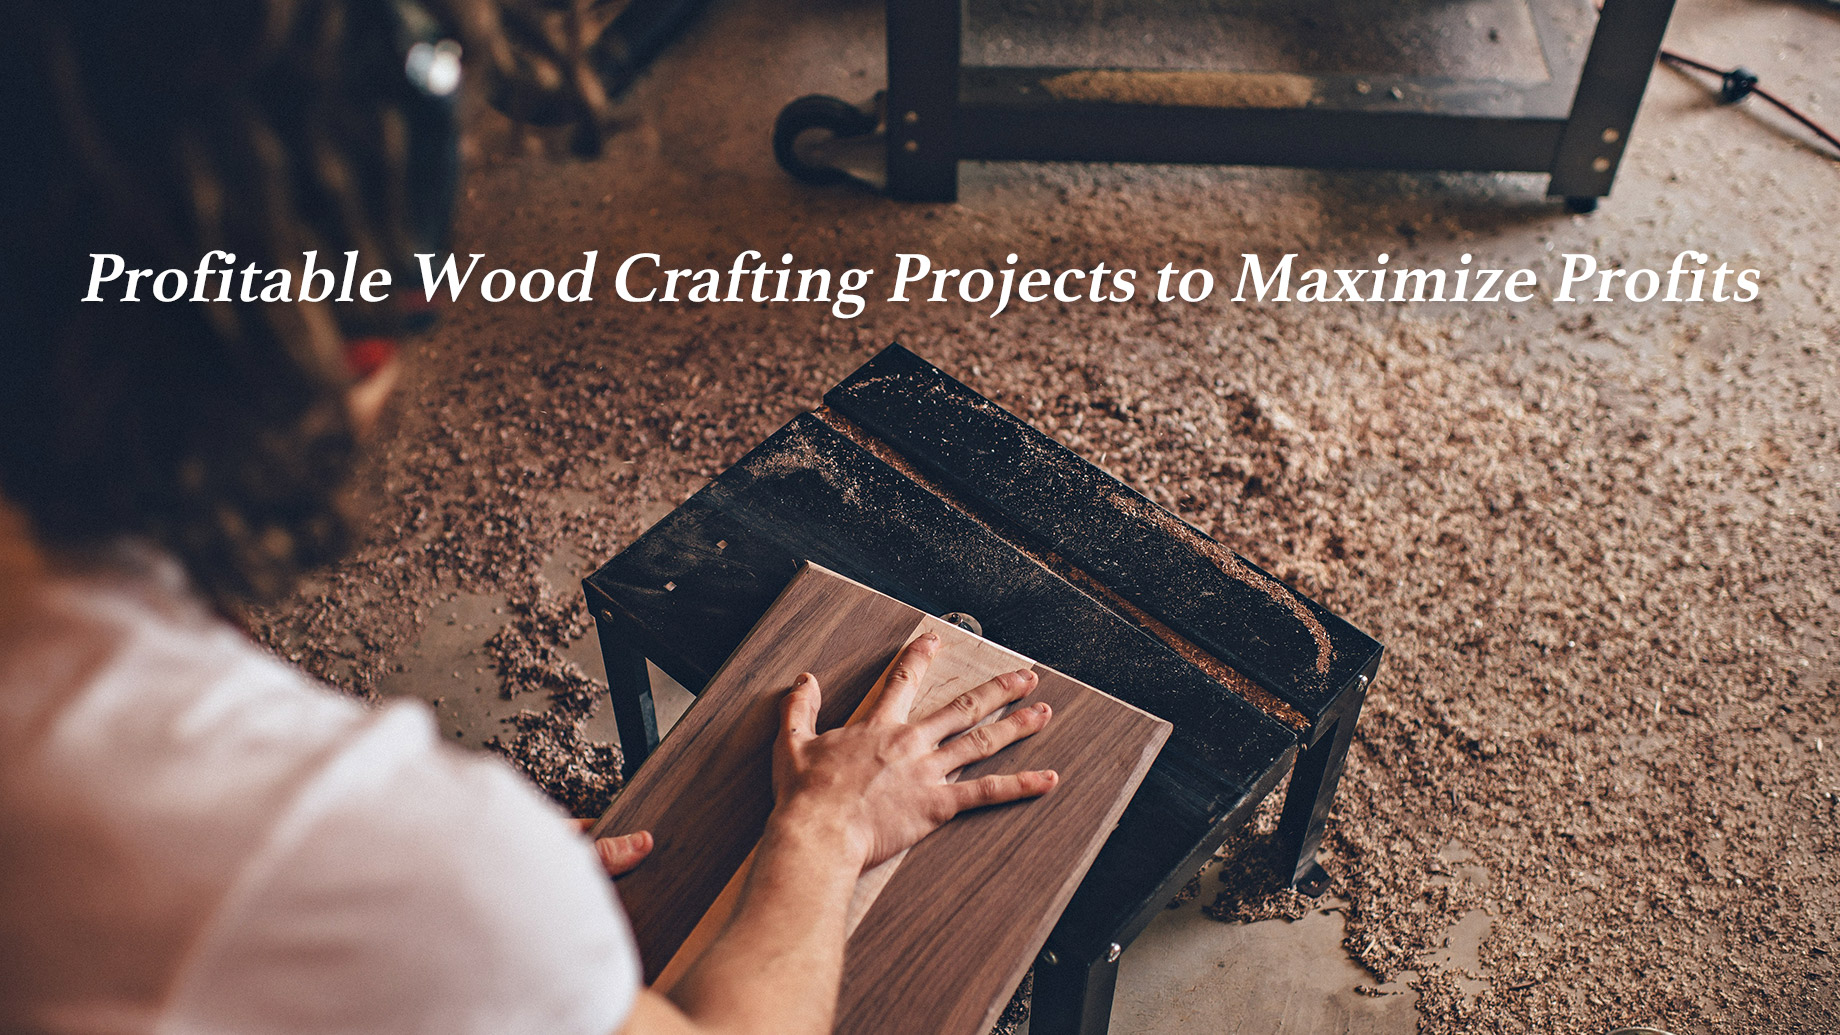 Profitable Wood Crafting Projects to Maximize Profits